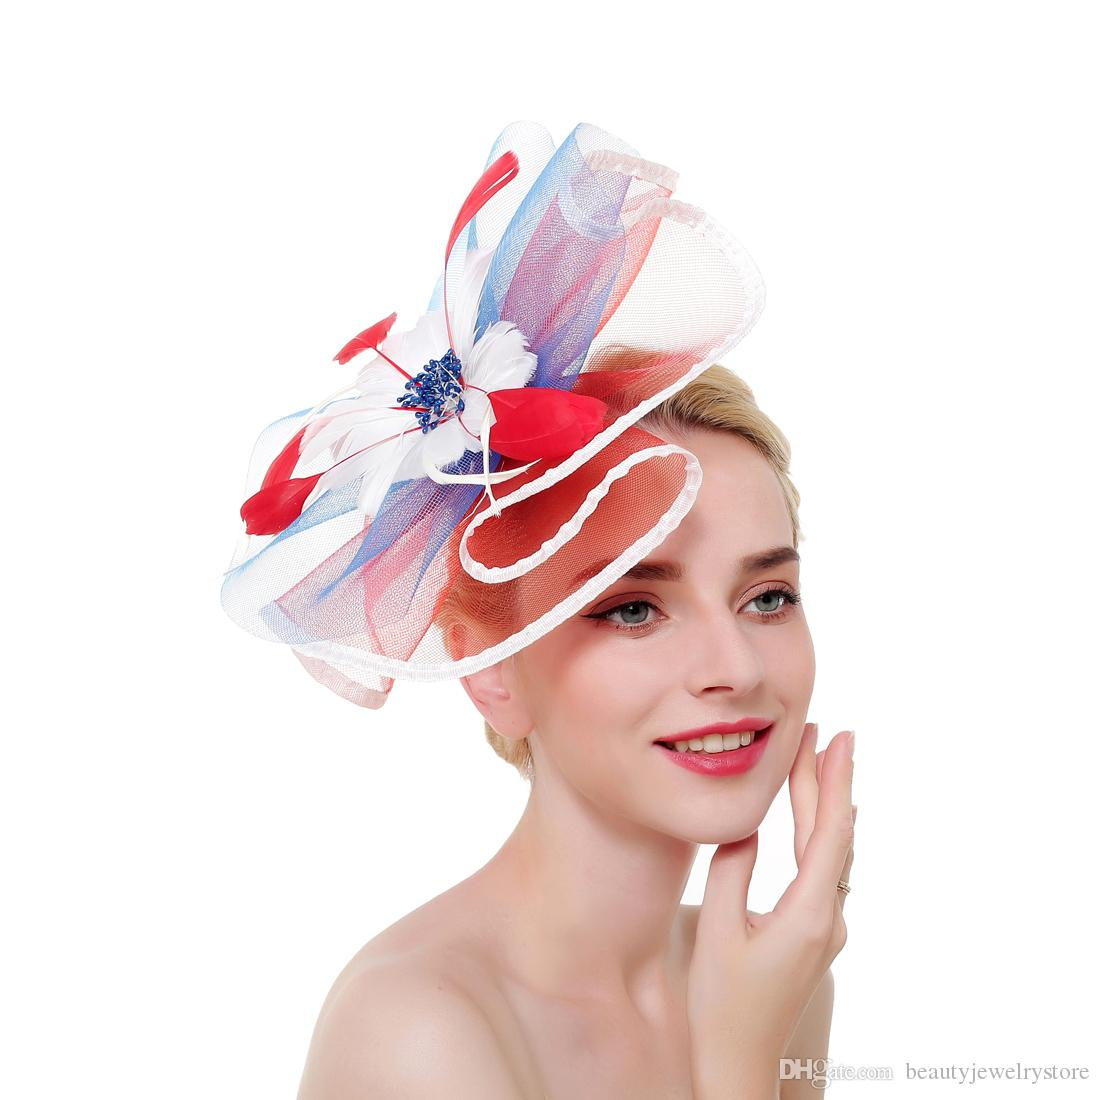 Colorful Tulle Hats for Women Formal Party Hats Accessories Feathers Beaded Elegant Wedding Party Head Wear chapeau mariage